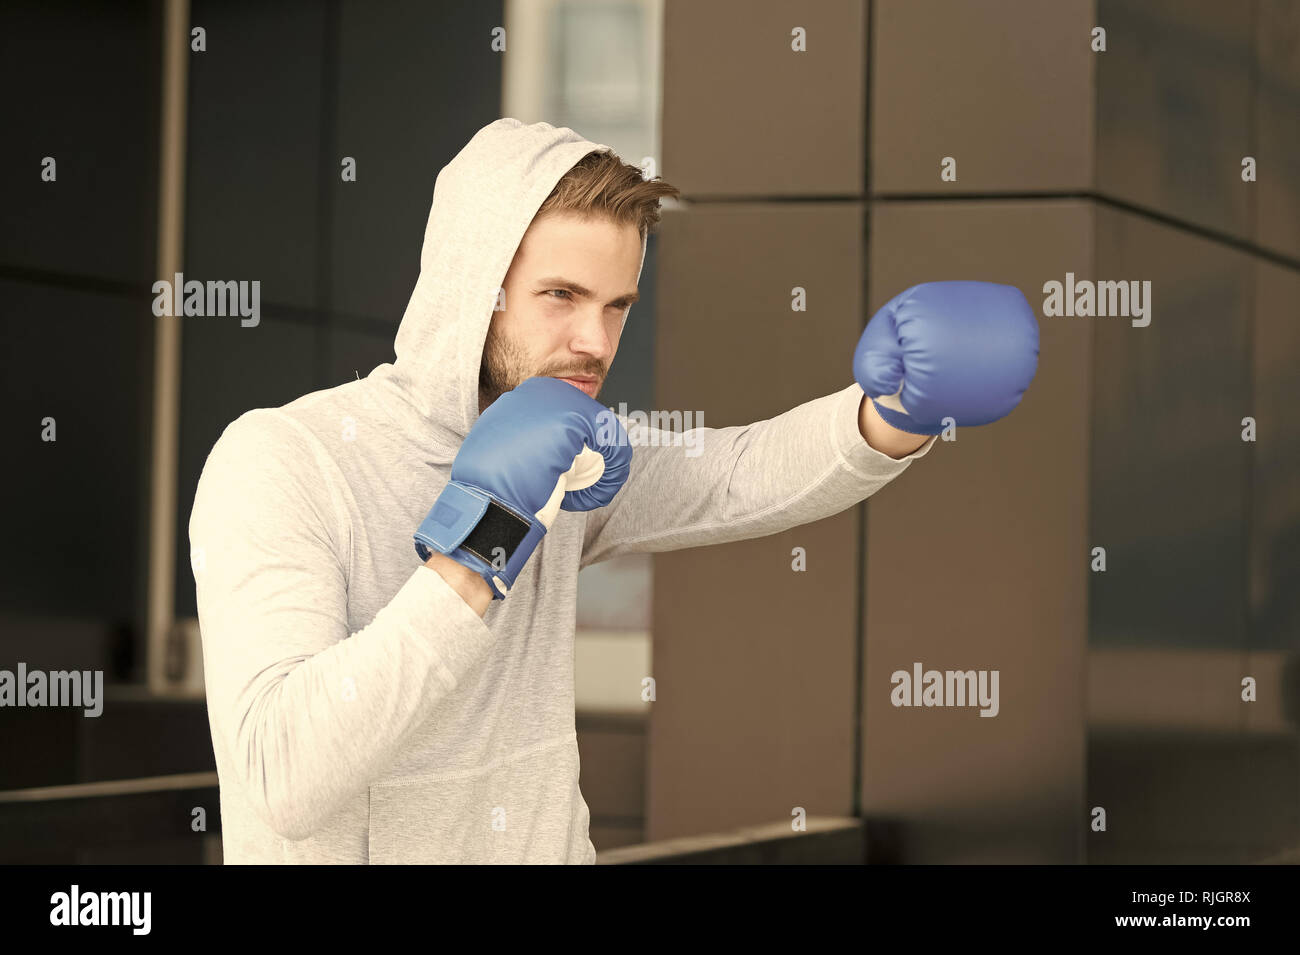 Man athlete on concentrated face with sport gloves practicing boxing punch, urban background. Training his boxing skills. Boxer hood head practices jab punch. Sportsman boxer training boxing gloves. - Stock Image